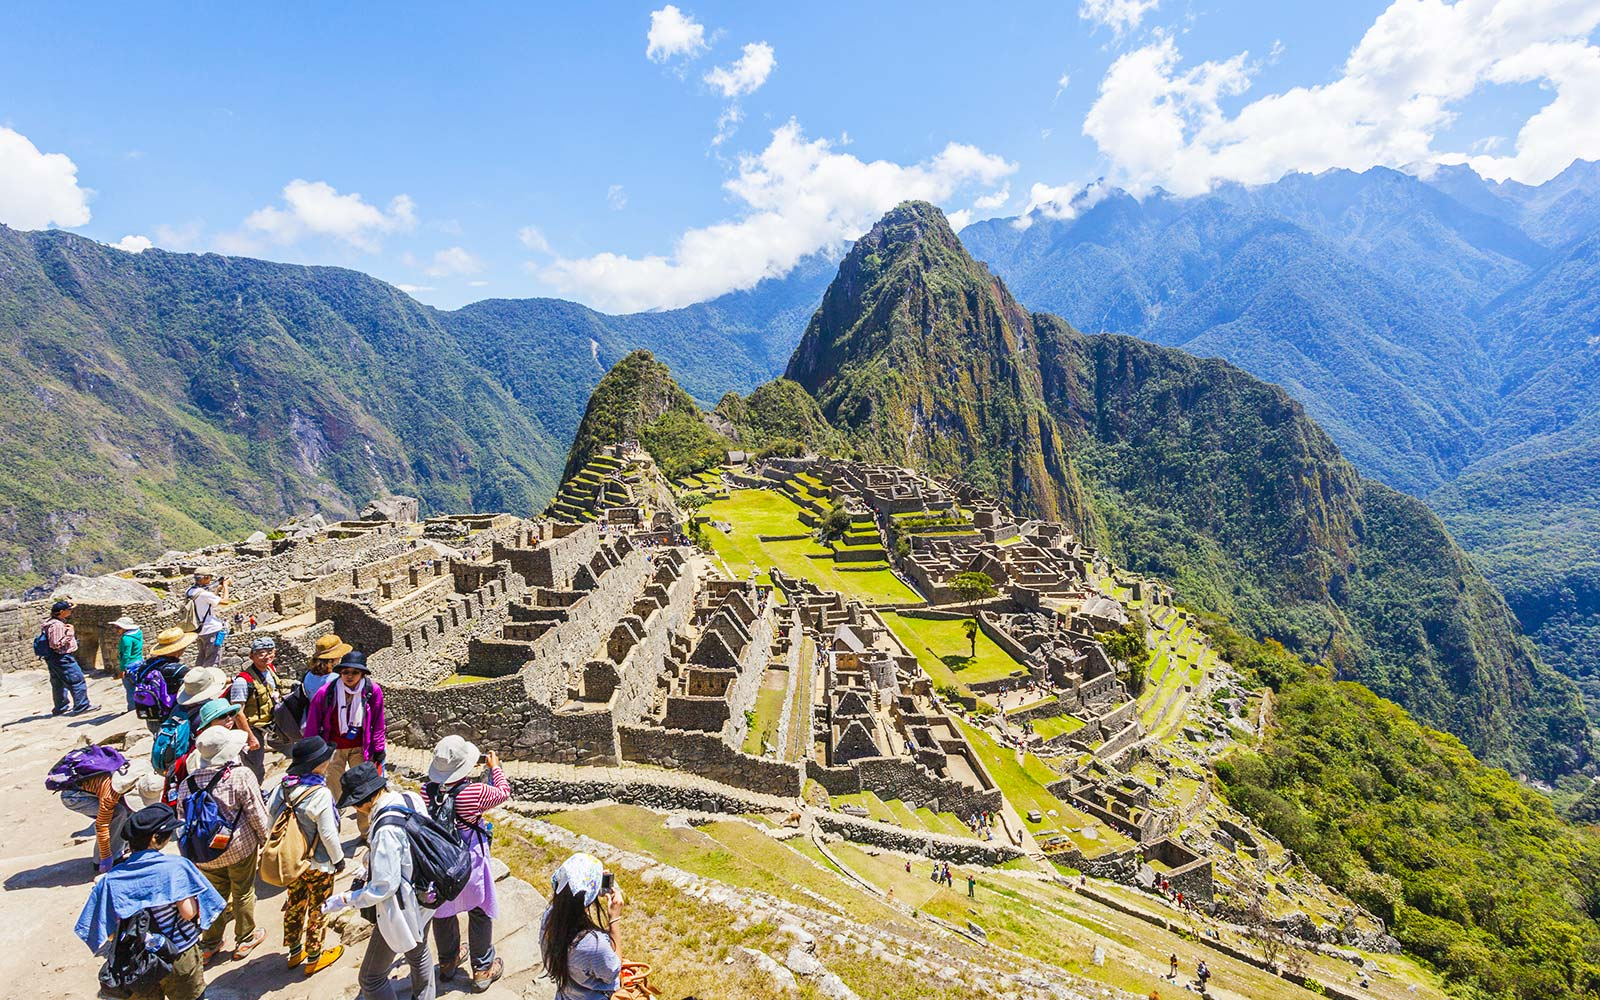 Machu Picchu Is Introducing New Regulations for Visitors this July